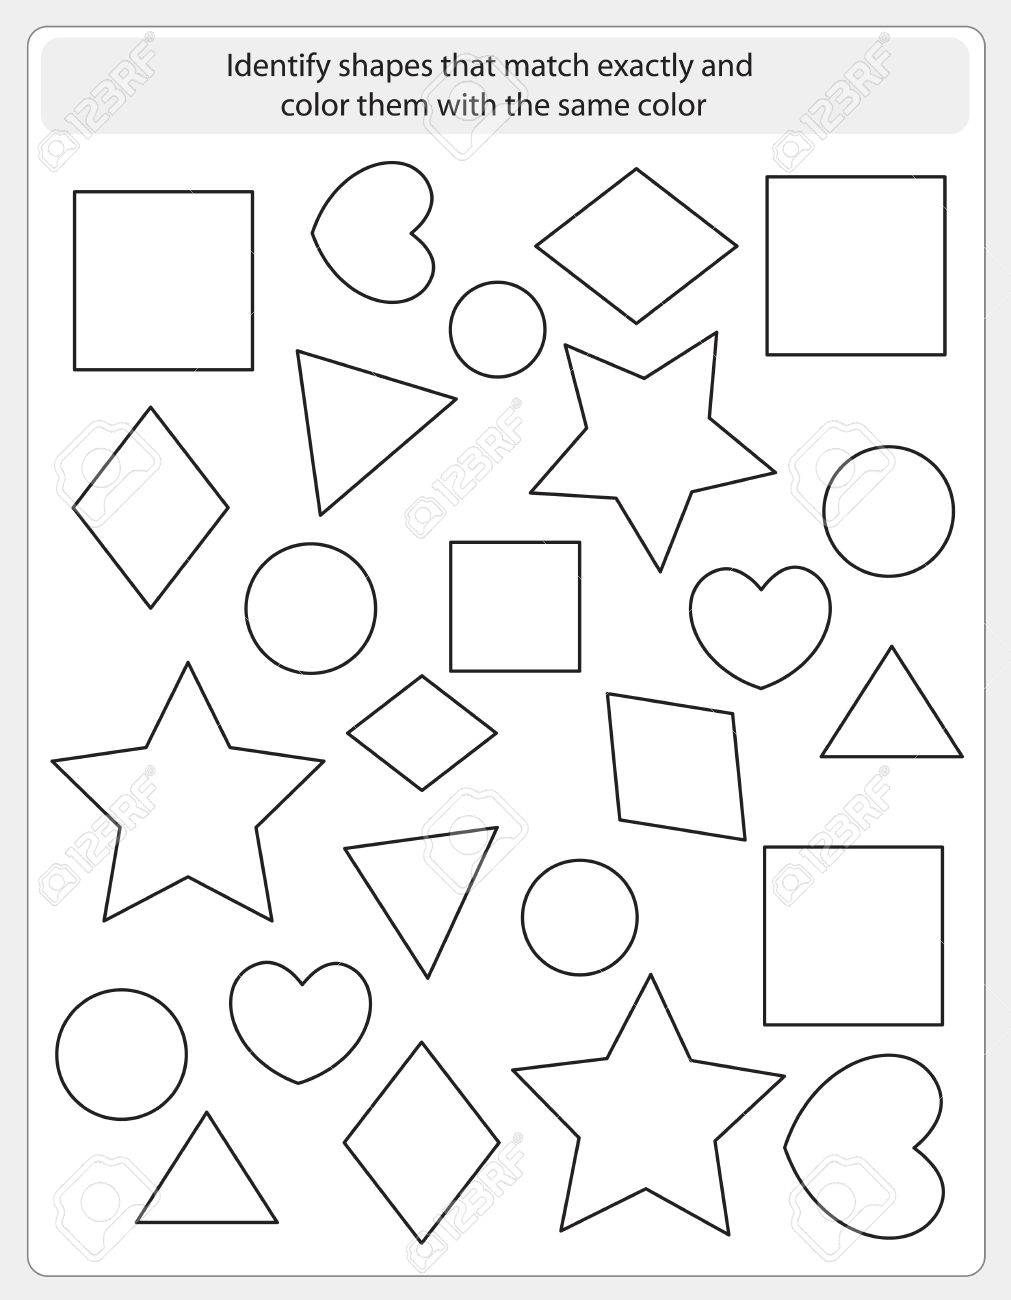 Coloring shapes worksheet - Kids Worksheet With Shapes To Match And Color Same Shape Stock Vector 38748115